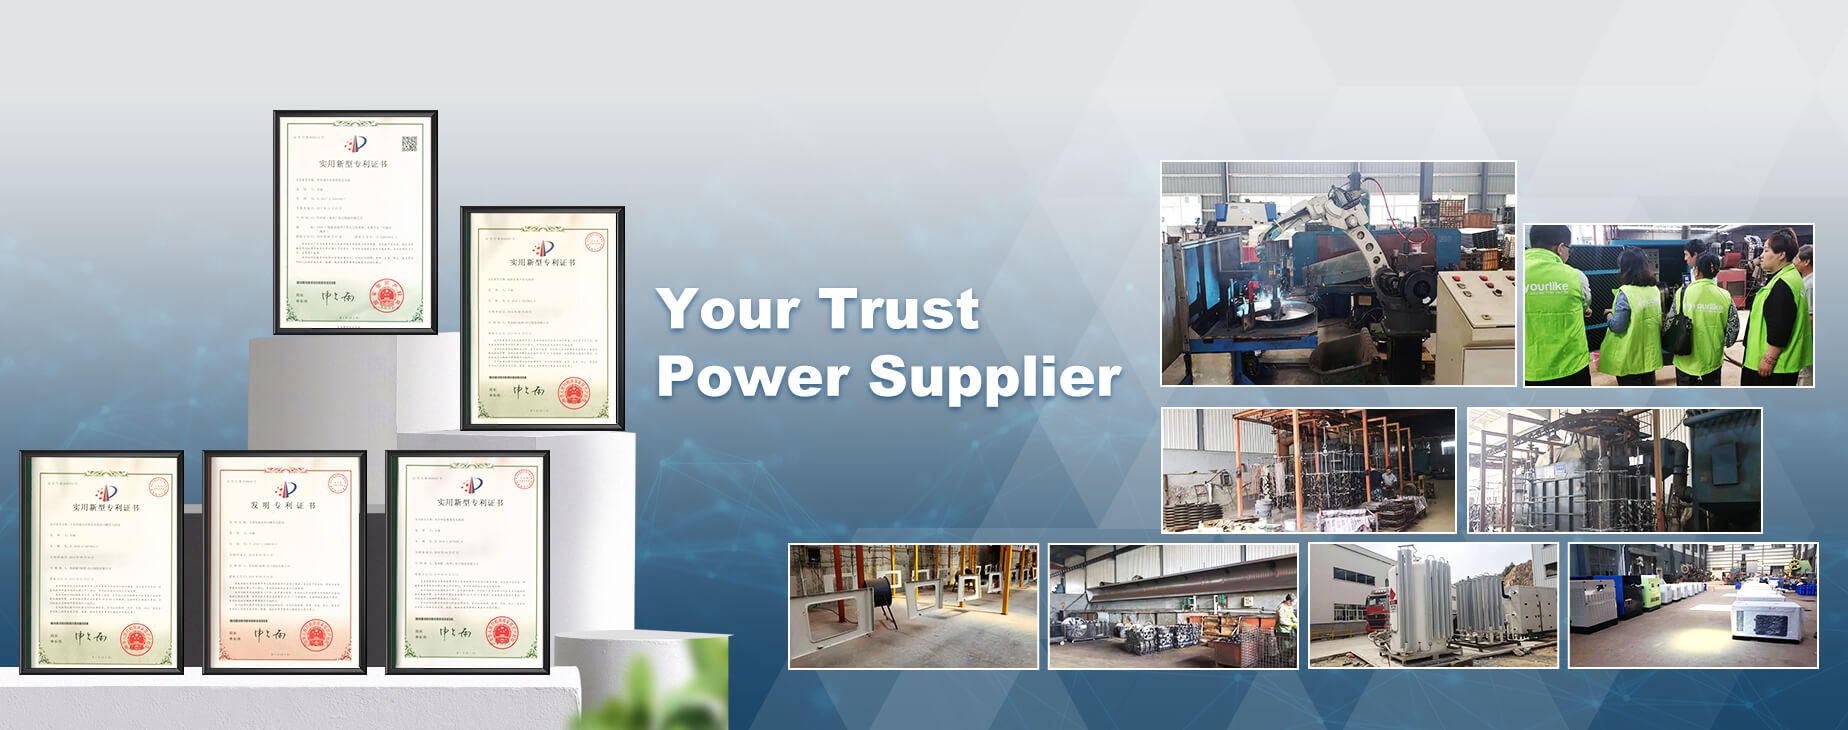 Your Trust  Power Supplier